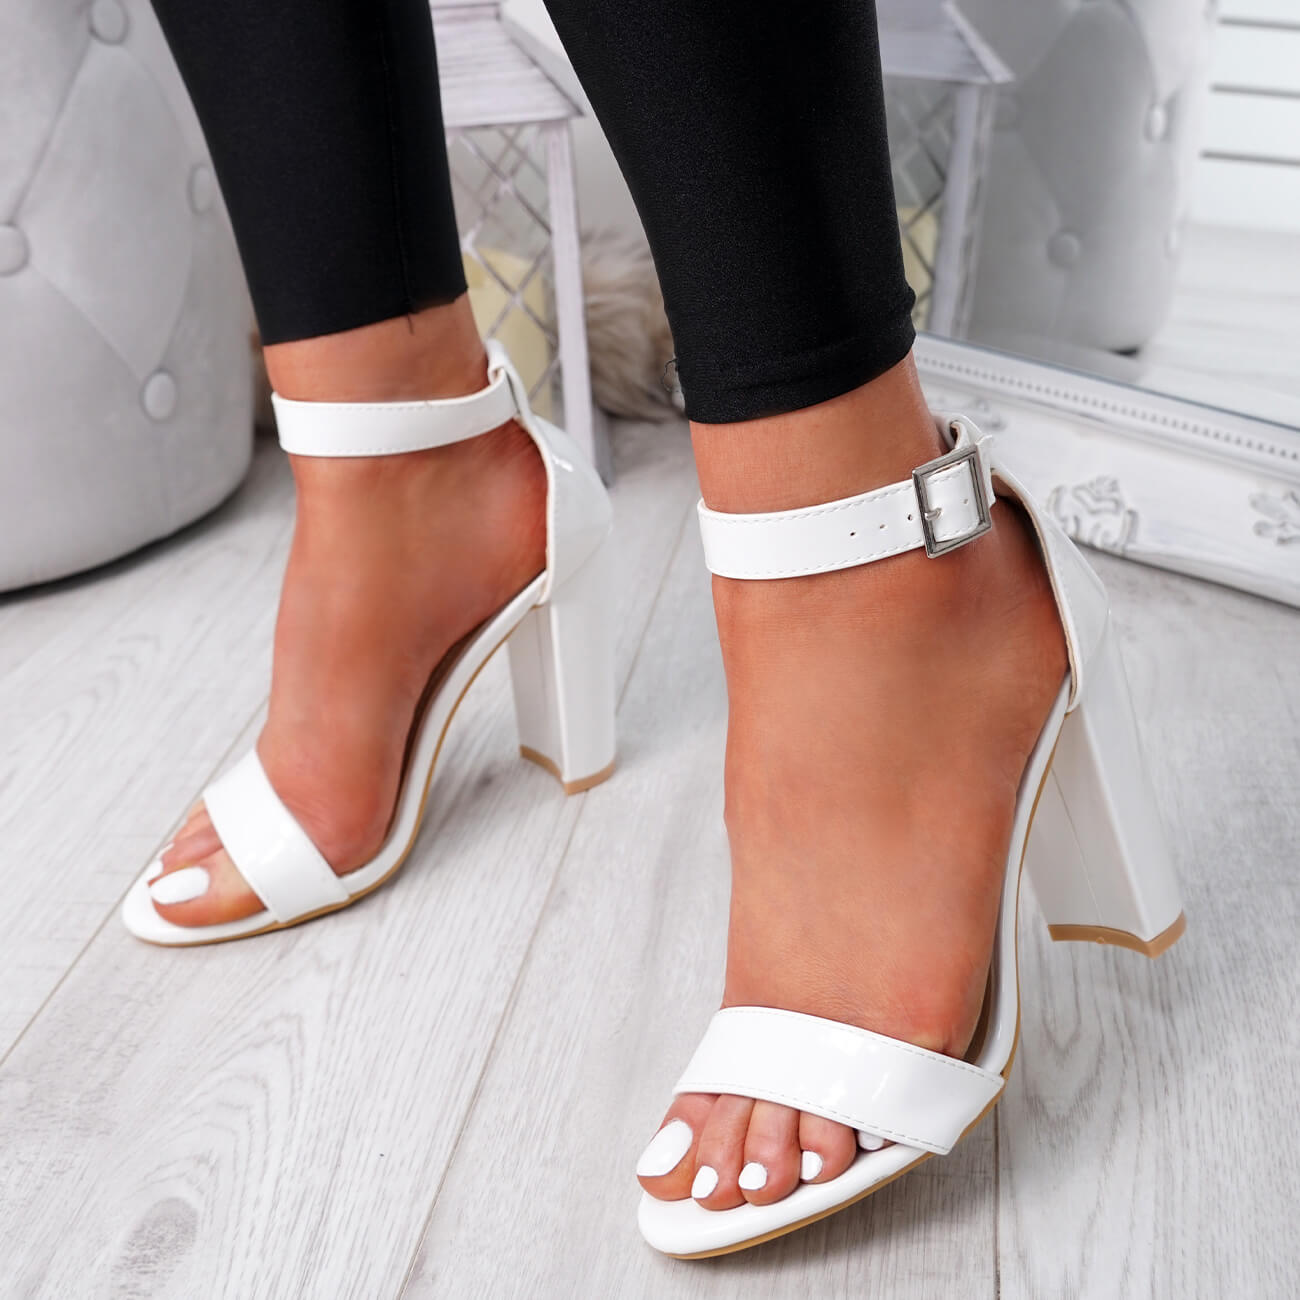 WOMENS-LADIES-HIGH-BLOCK-HEEL-PARTY-SANDALS-PEEP-TOE-ANKLE-STRAP-SHOES-SIZE-UK thumbnail 30